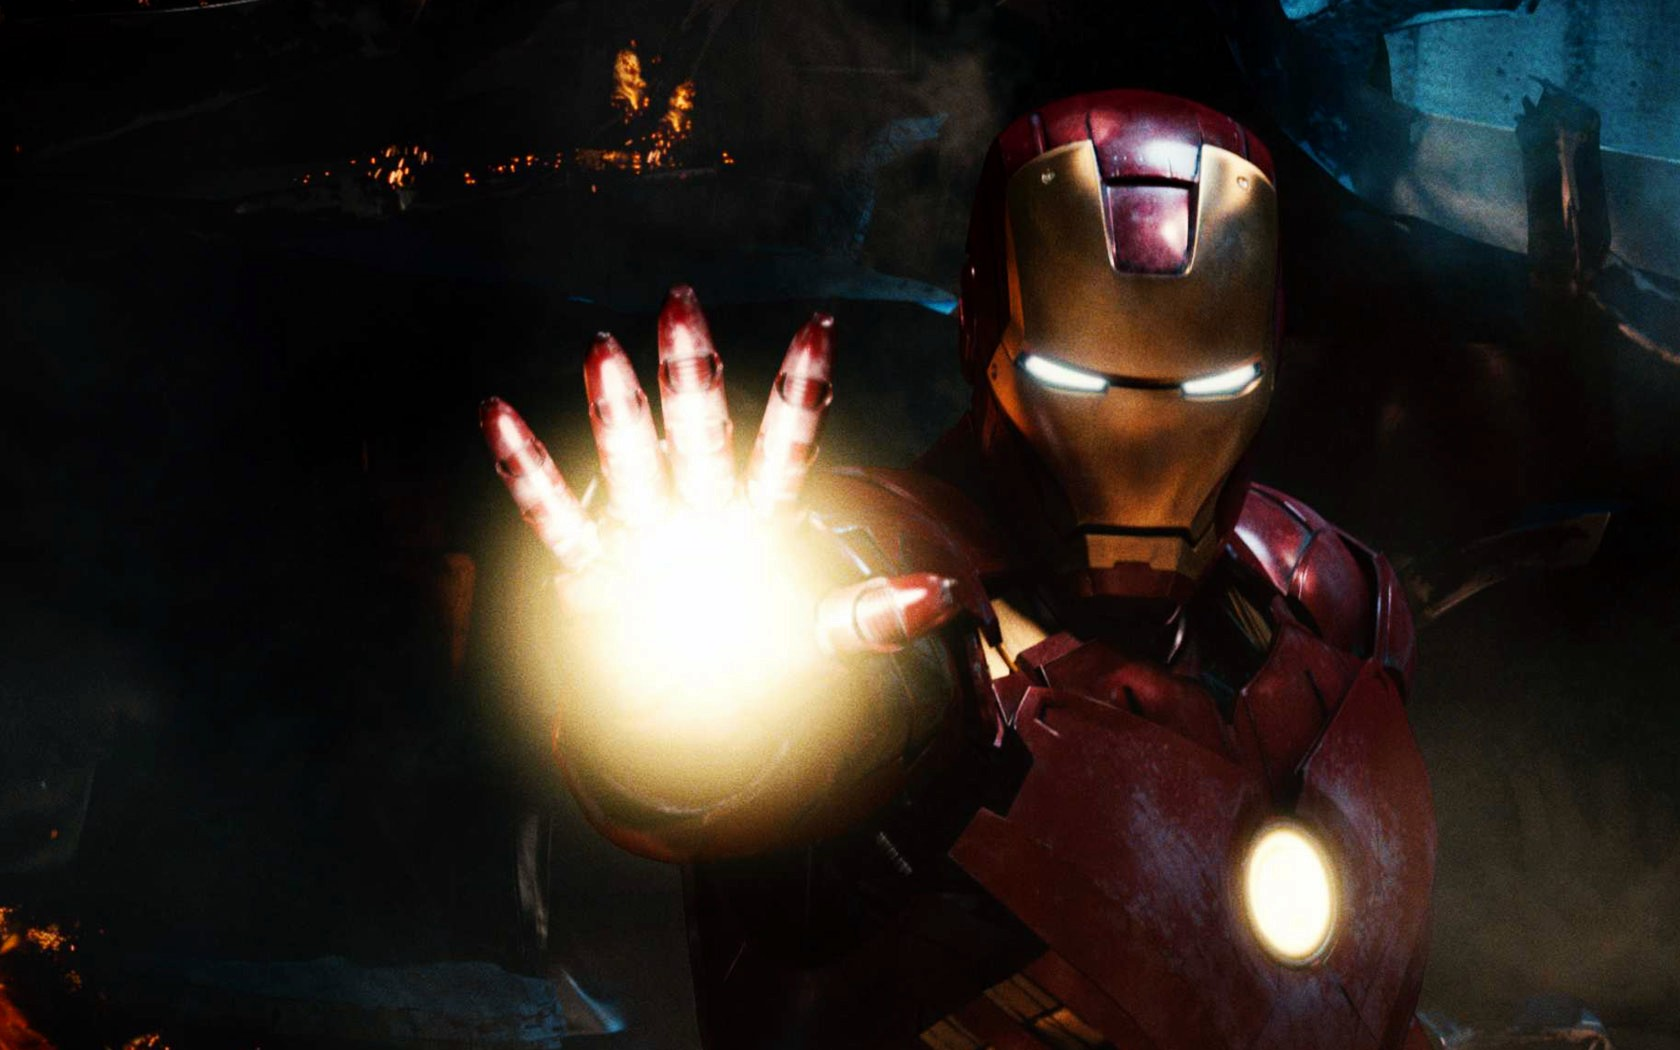 Free Download Iron Man Iron Man 3 Wallpaper 31868061 1680x1050